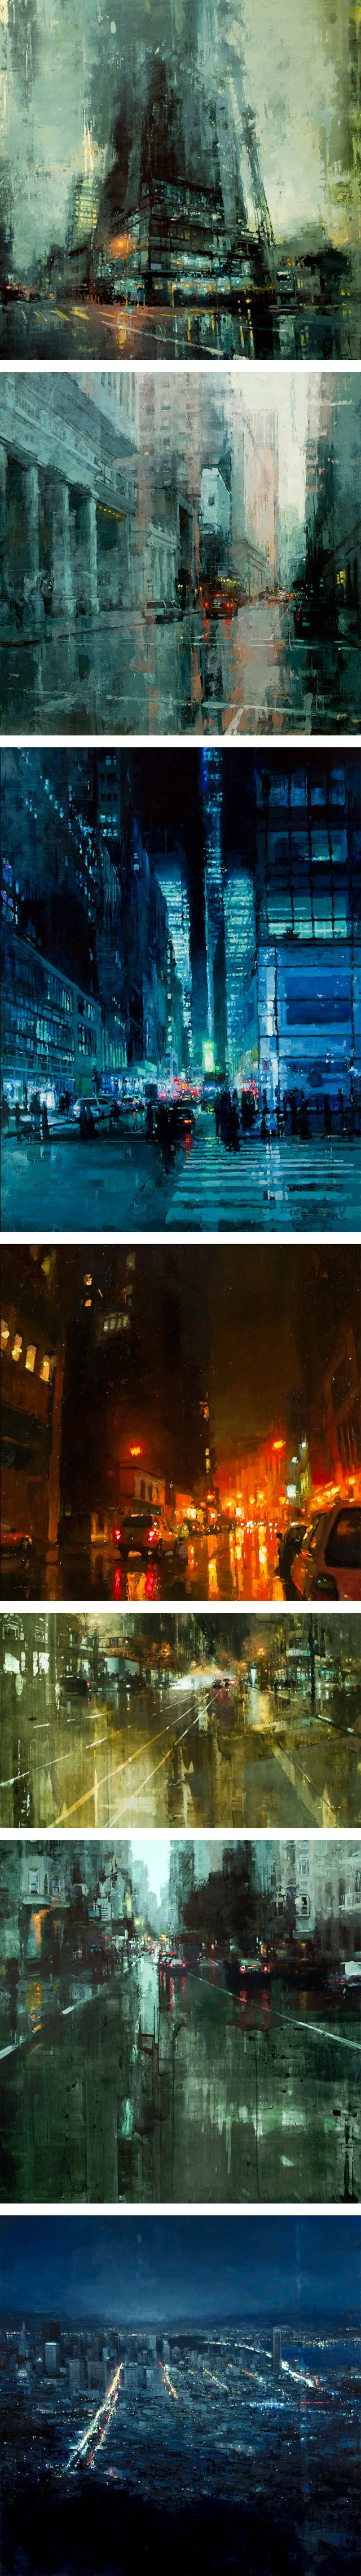 Cityscapes Painted with Oils by Jeremy Mann. via Monica Brorstad. Rain reflections, beautifully rendered.